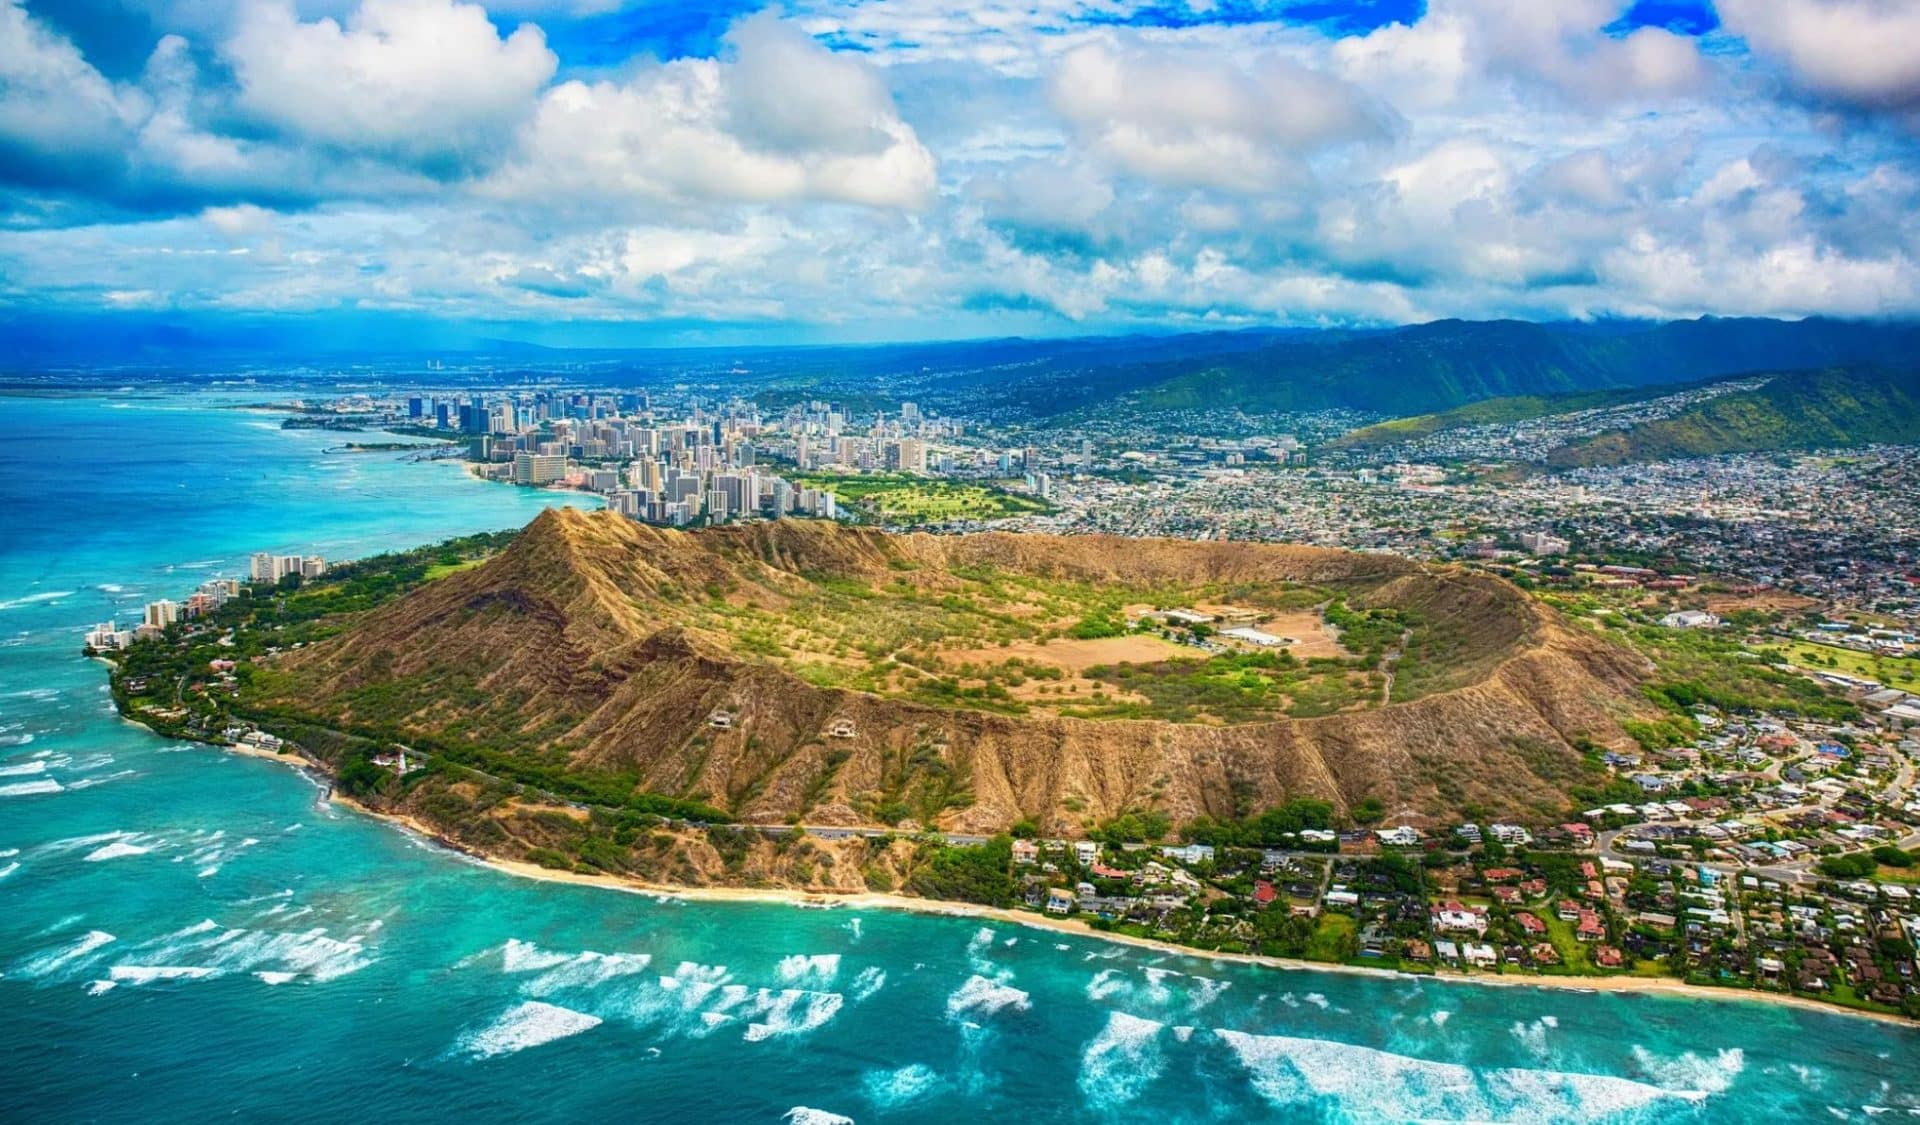 Hike Diamond Head in Honolulu